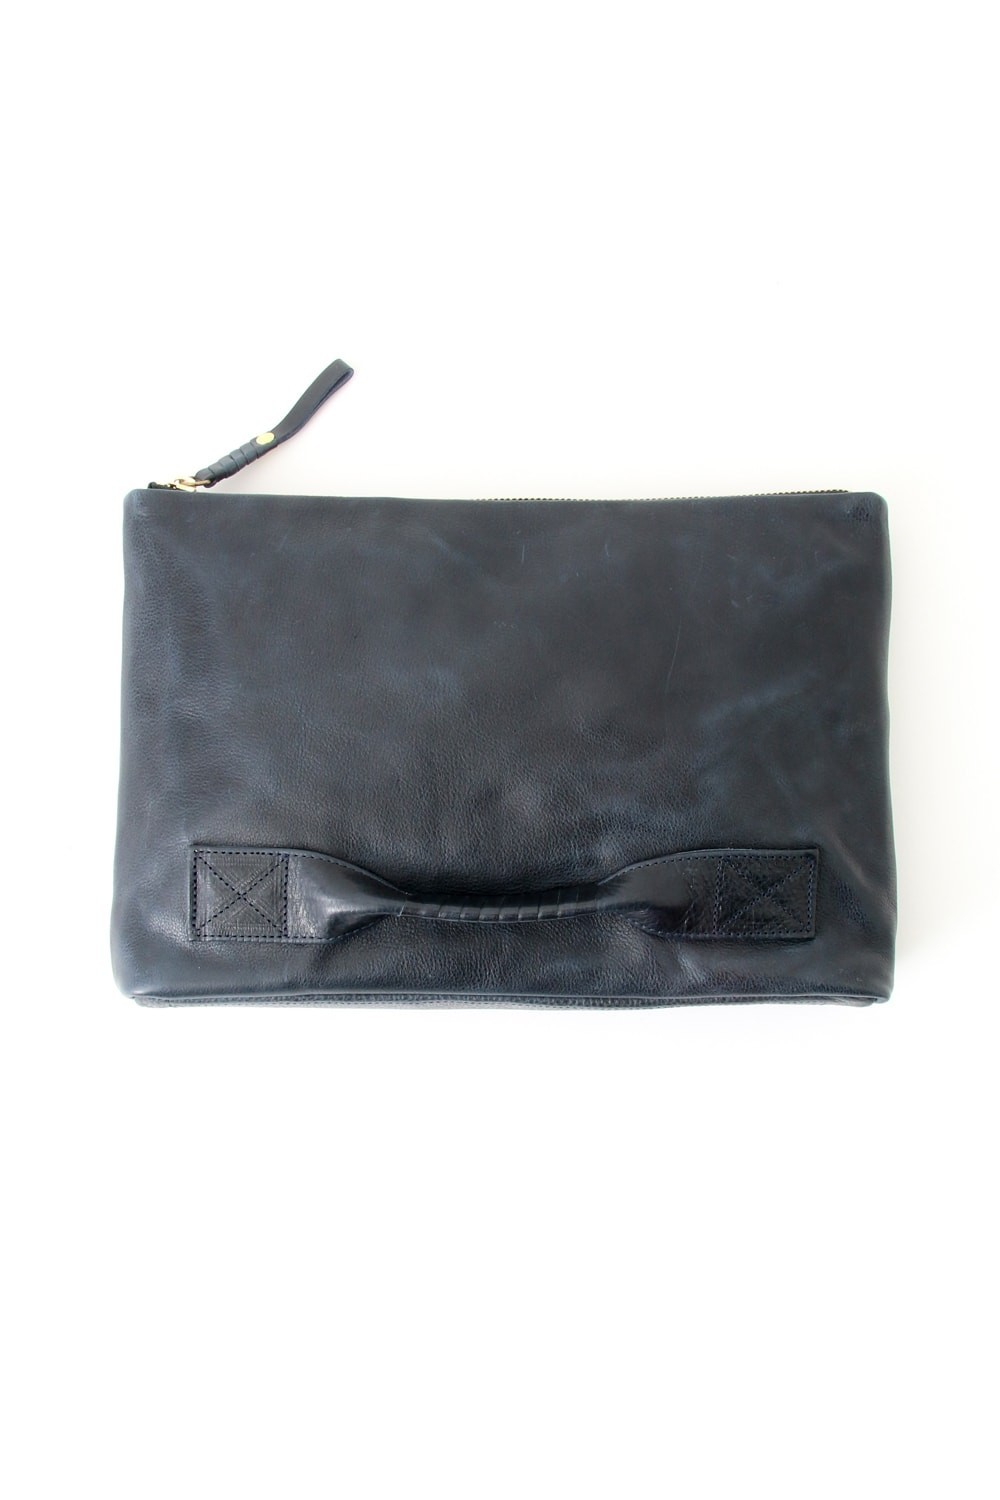 4 handle file - Clutch bag - Navy-Navy-Free